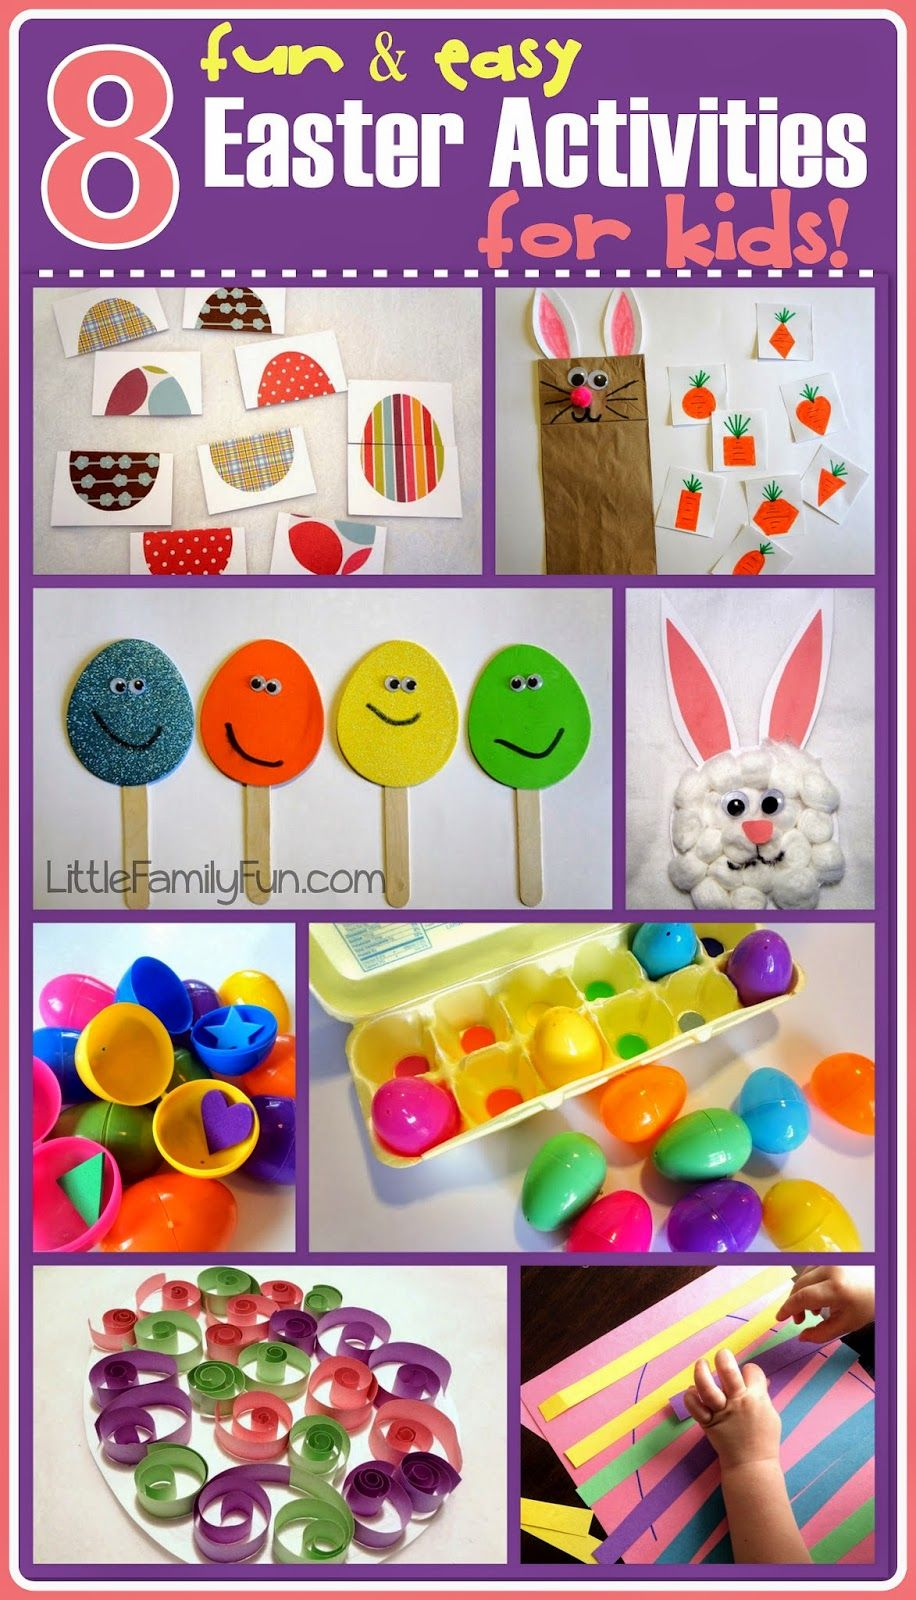 Fun easy easter crafts activities for kids cute ideas kid fun easy easter crafts activities for kids cute ideas negle Gallery